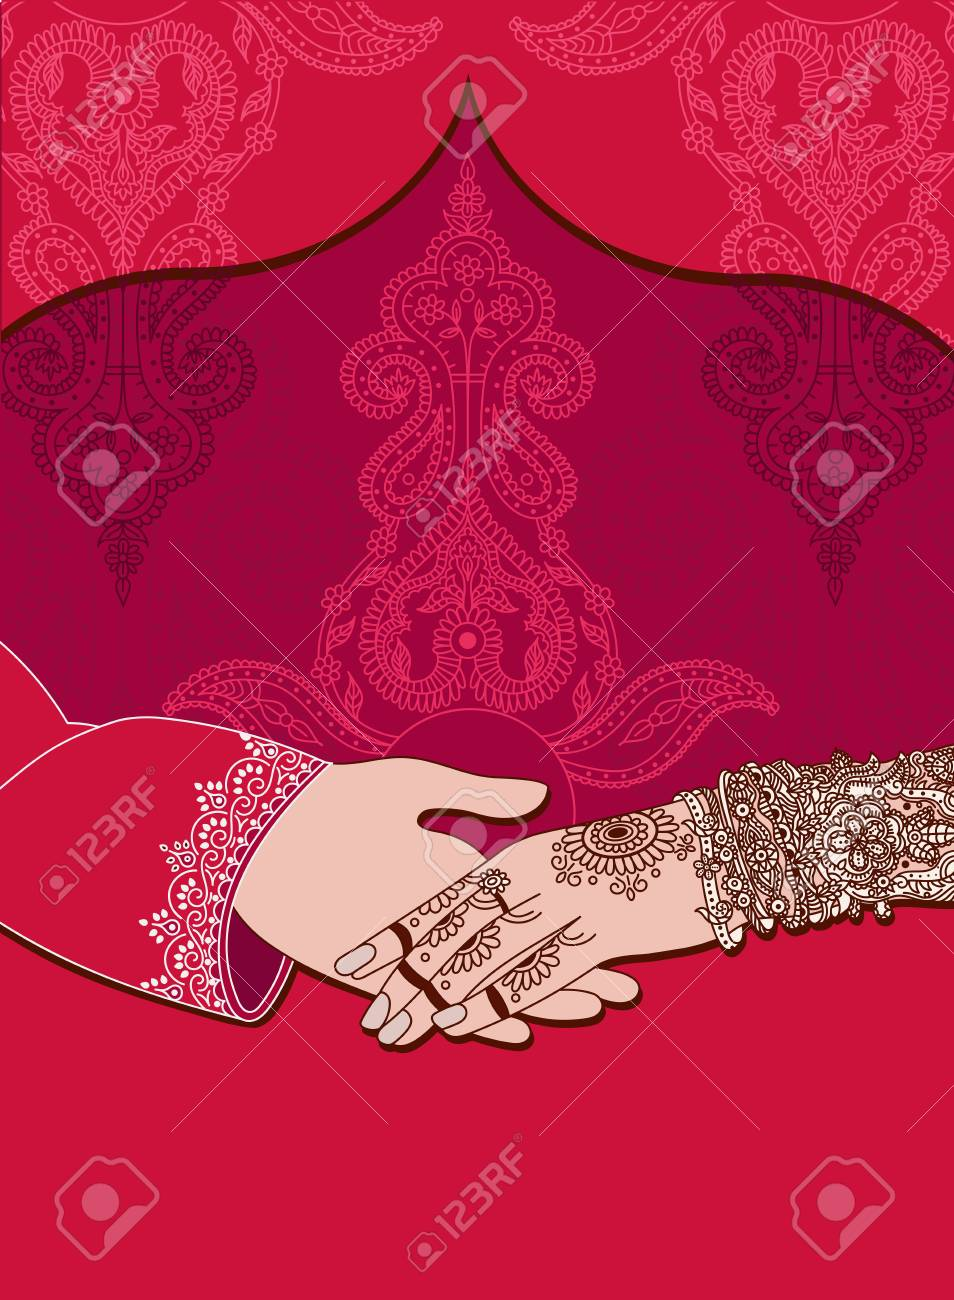 wedding indian invitation card on red background india marriage